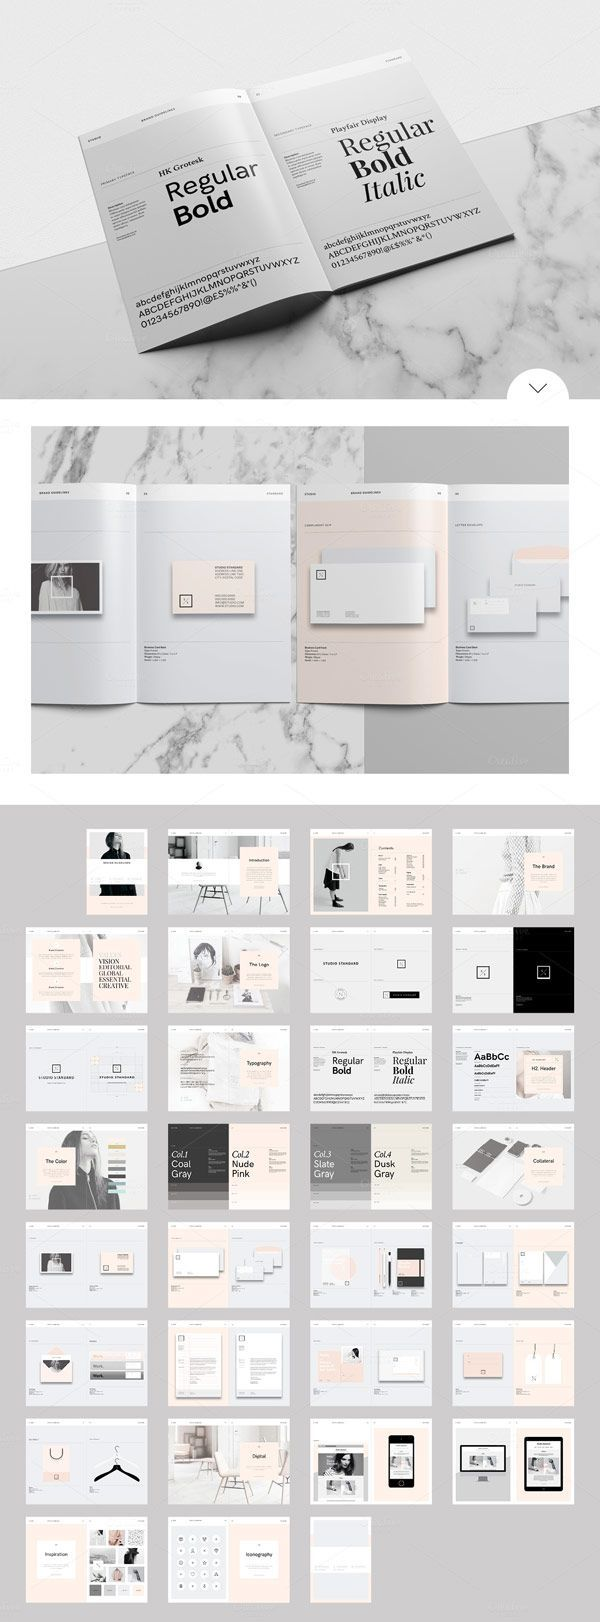 Studio Branding Guidelines Template for Adobe InDesign